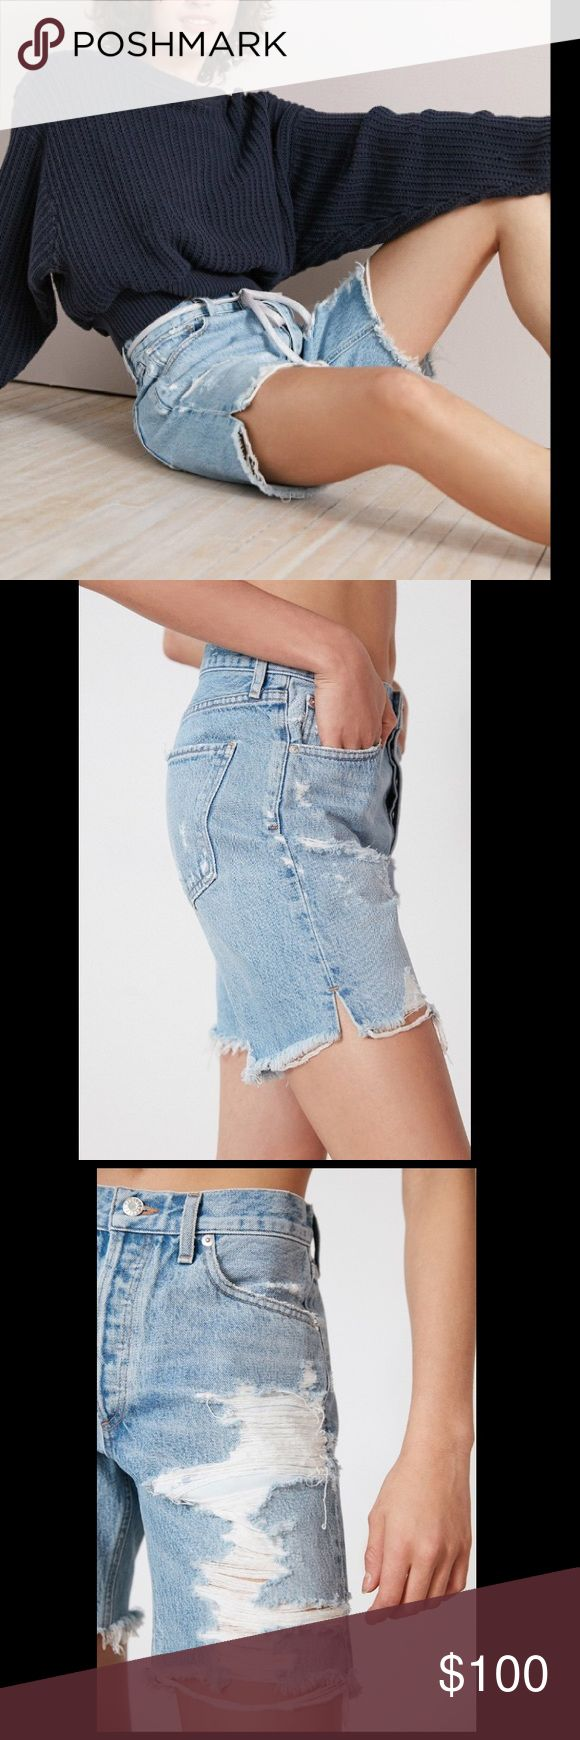 🆕Urban Outfitters Distressed Jeans Shorts Urban Outfitters Distressed Jeans Shorts size 32 in perfect condition never been worn. Item true to photo. Urban Outfitters Shorts Jean Shorts